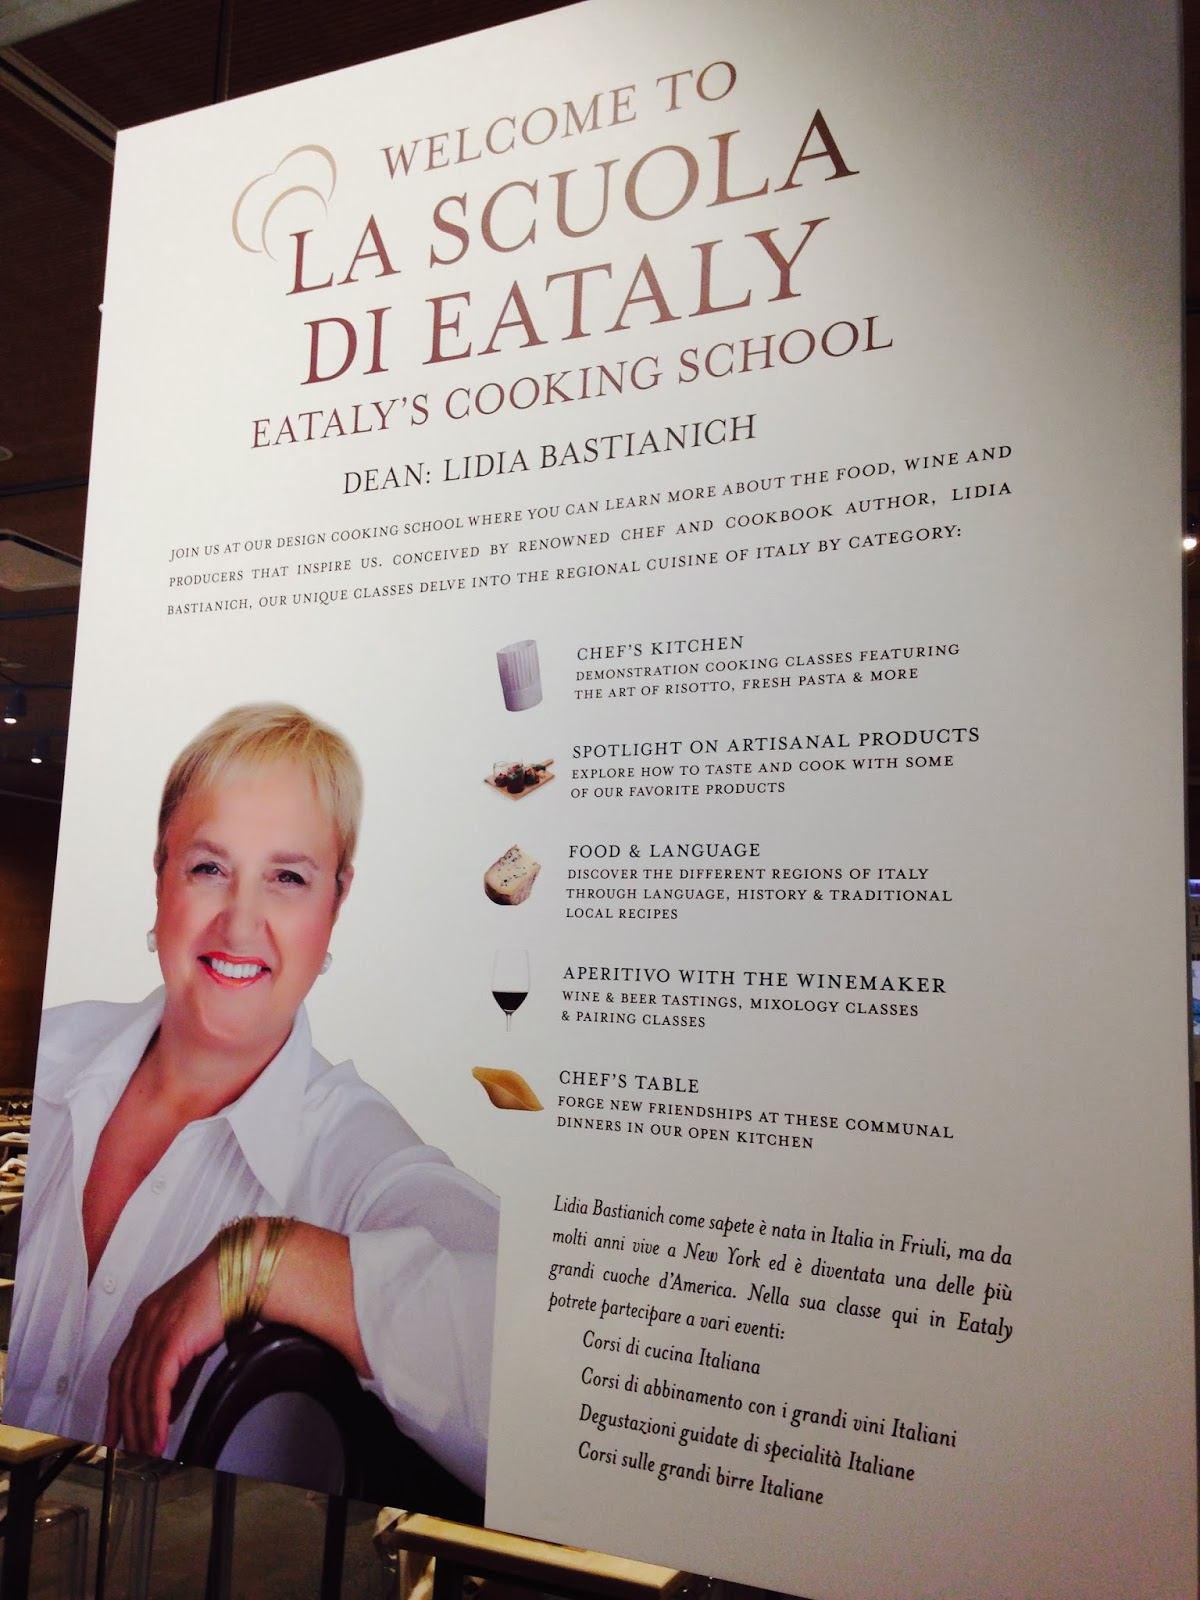 the cooking school is located on the second floor of eataly and offers demo style classes ranging from how to make fresh pasta or risotto wine tastings